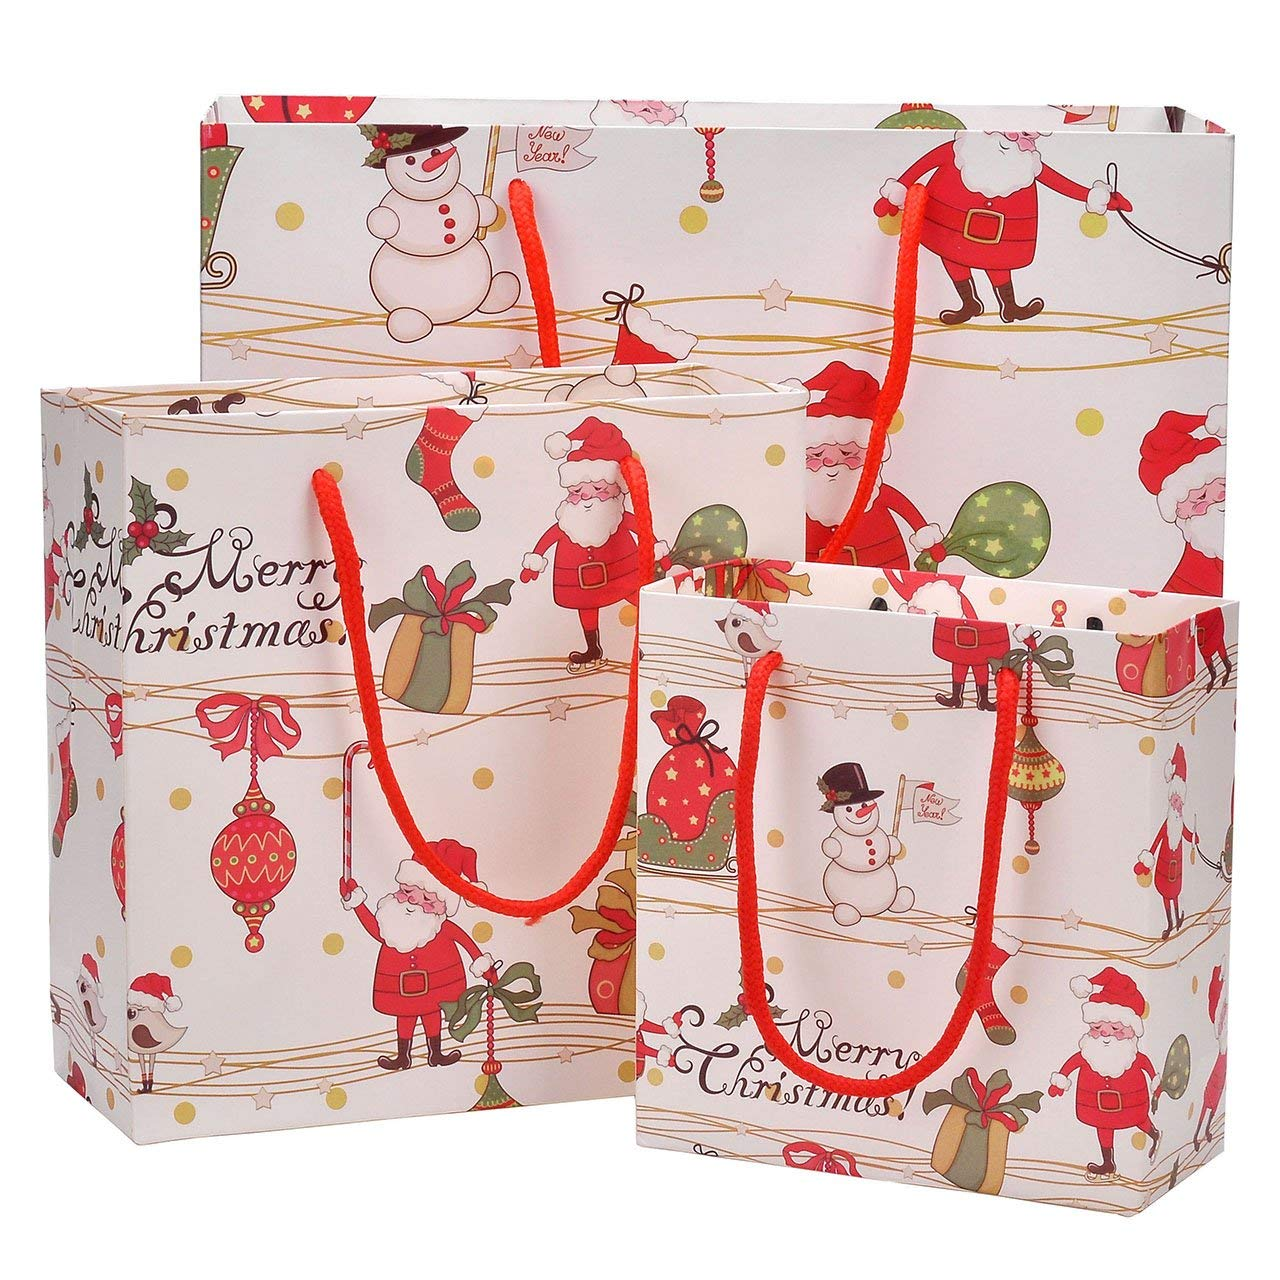 Christmas Gift Bags, Yoption 12 Pack Elegant Gift Bags With Handles Holiday Craft Bags Cartoon Candy Gift Bags (4*Small+4*Medium+4*Large)